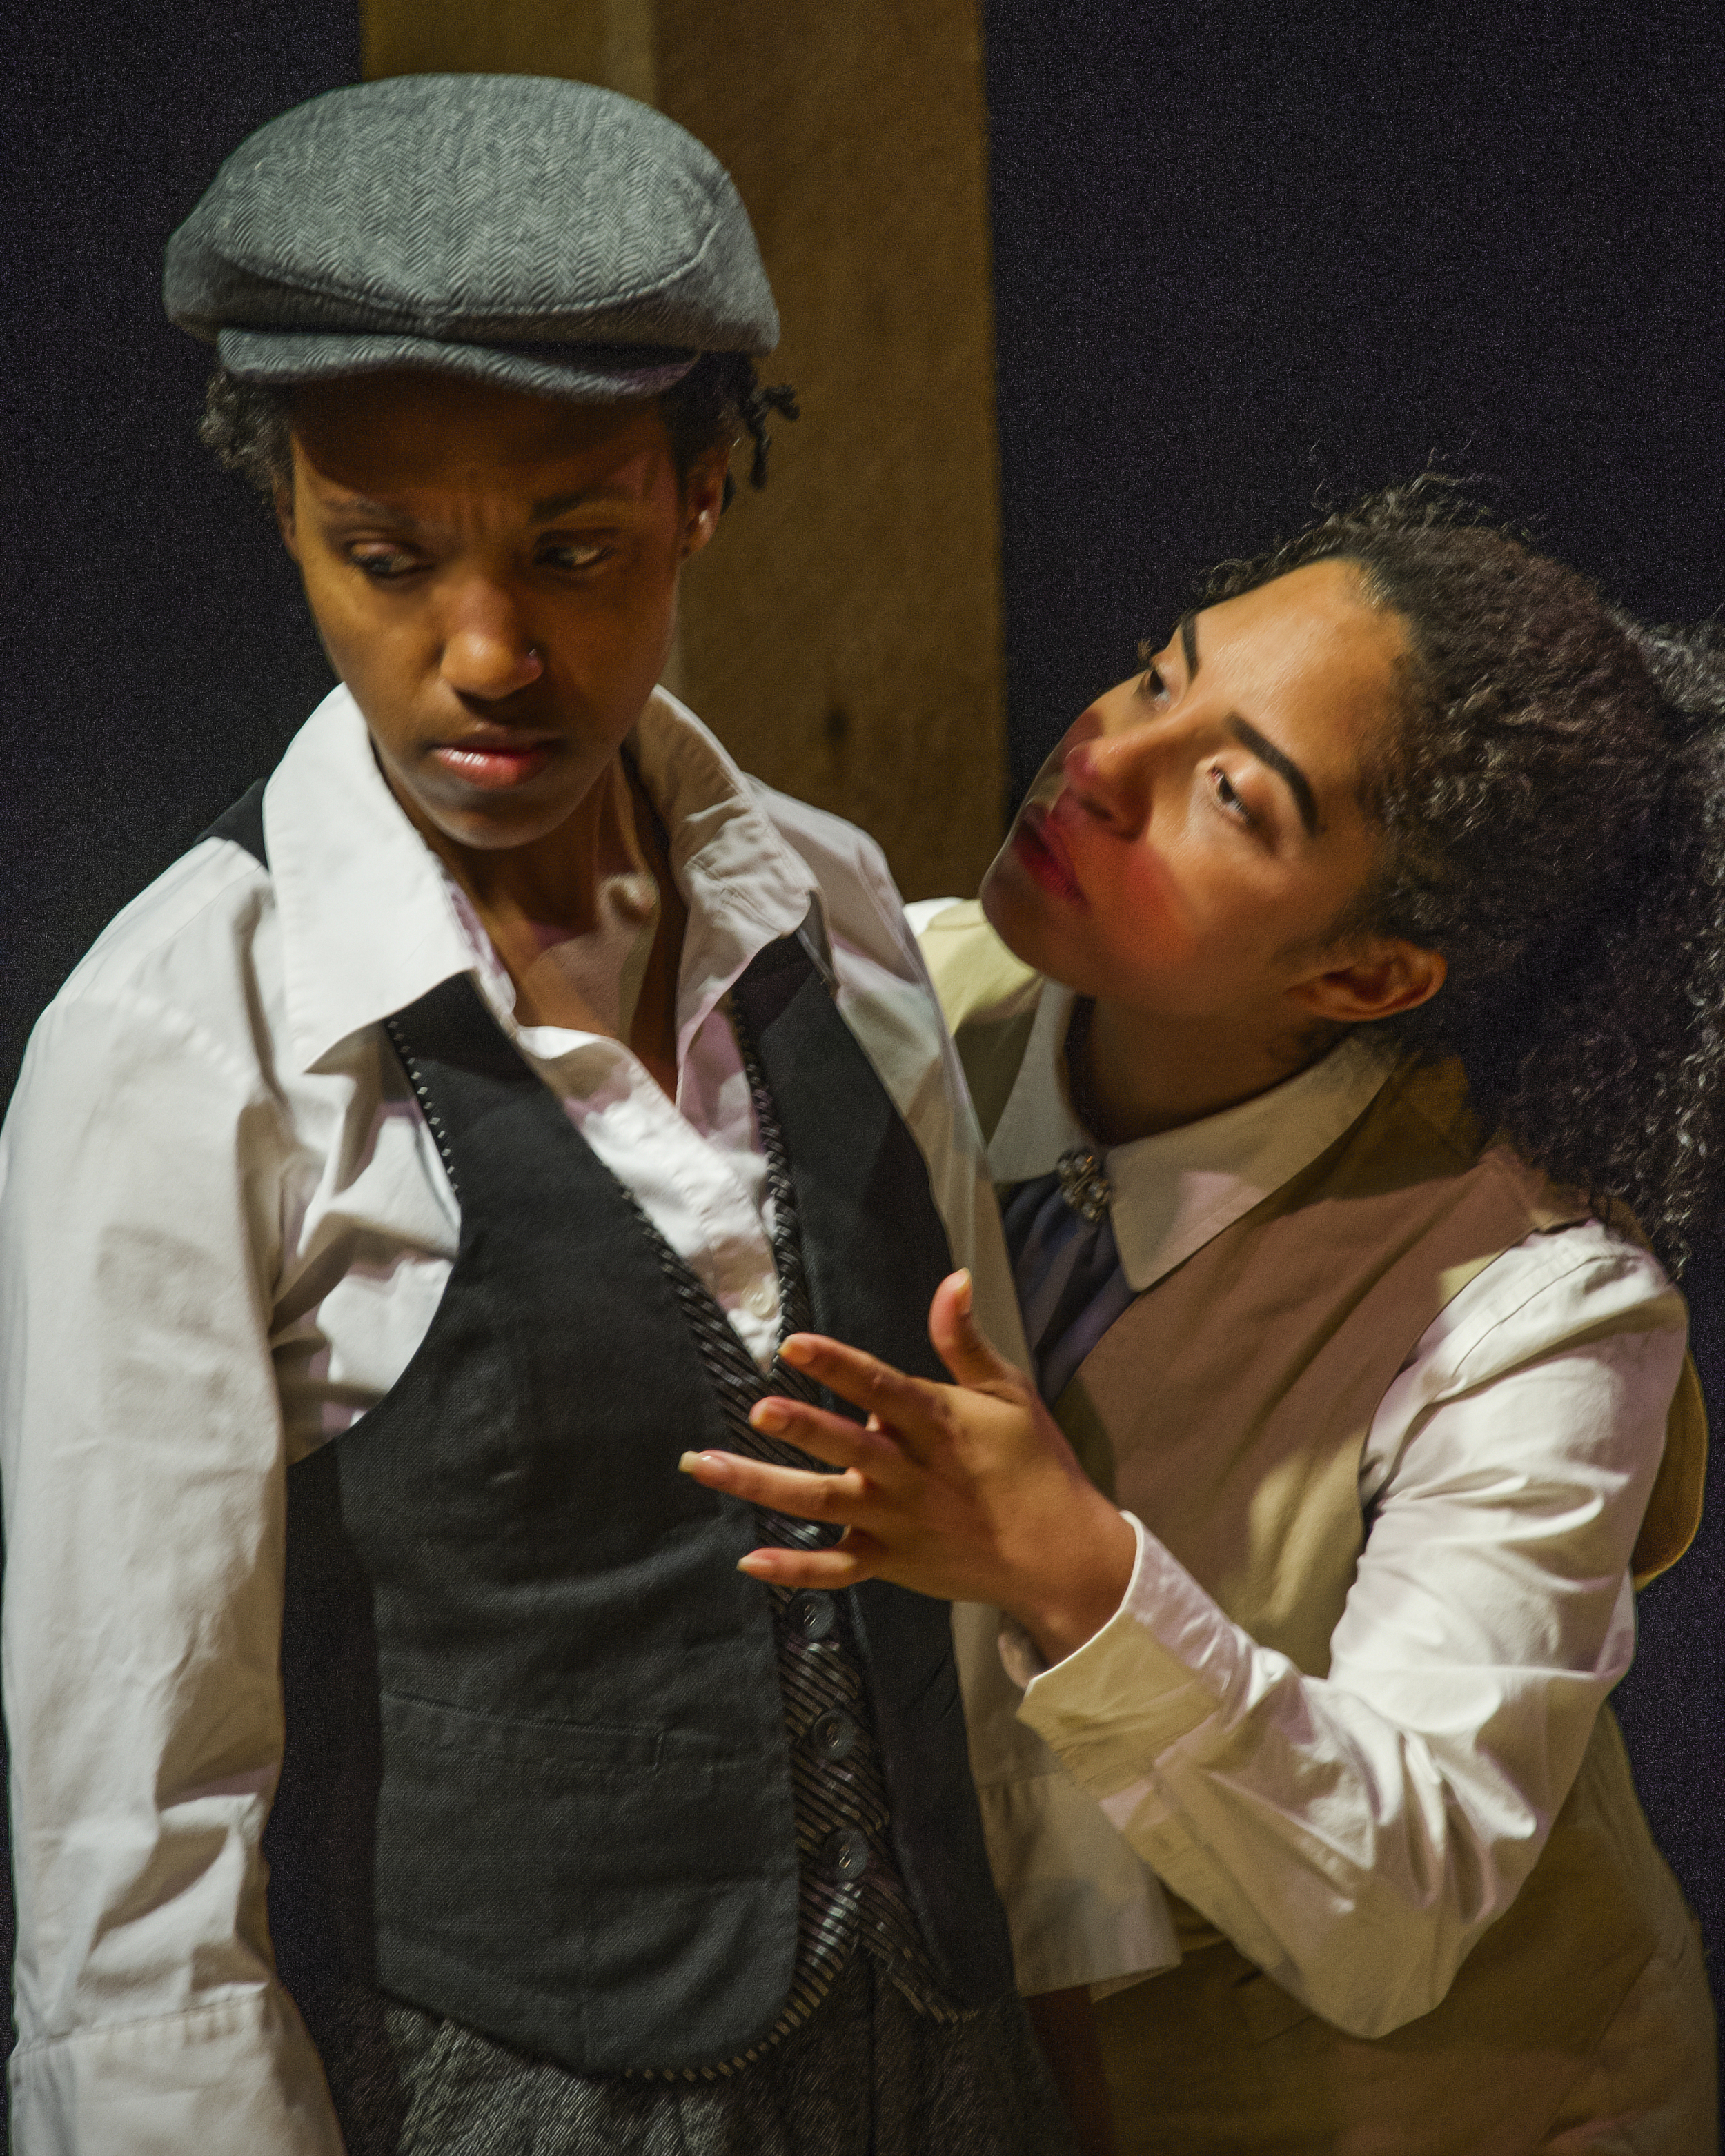 Robin JaVonne Smith (left) plays Anna Lion and Lauren Foster plays Walt Whitman in Fort Point Theatre Channel's premiere production of  Dreambook  photo copyright 2016 Carolle Photography